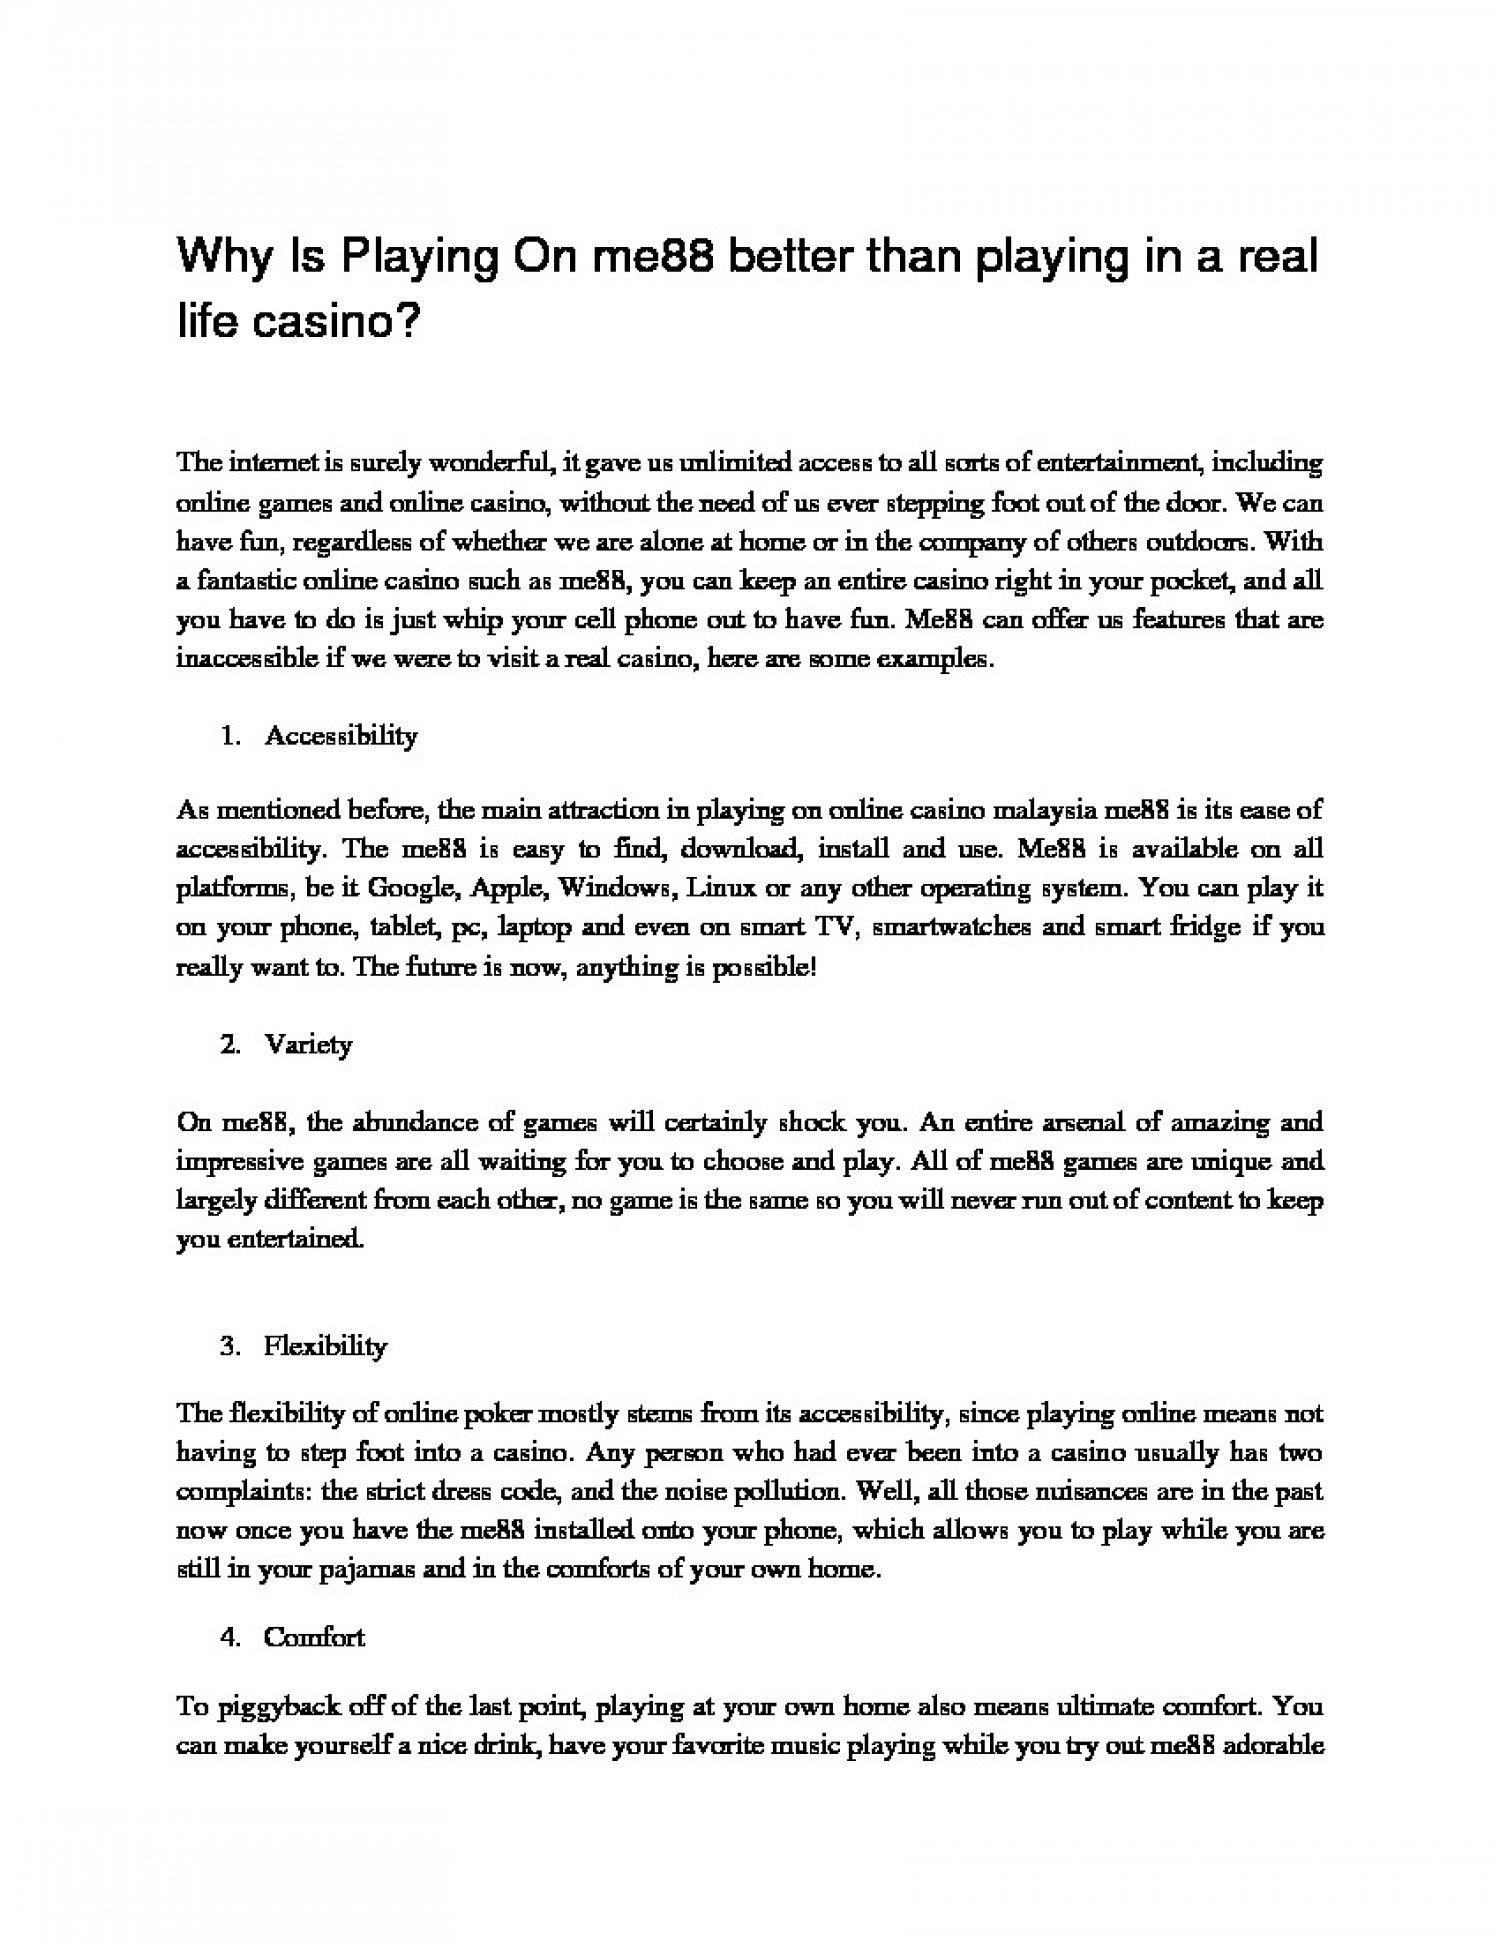 Why Is Playing On me88 better than playing in a real life casino? Infographic